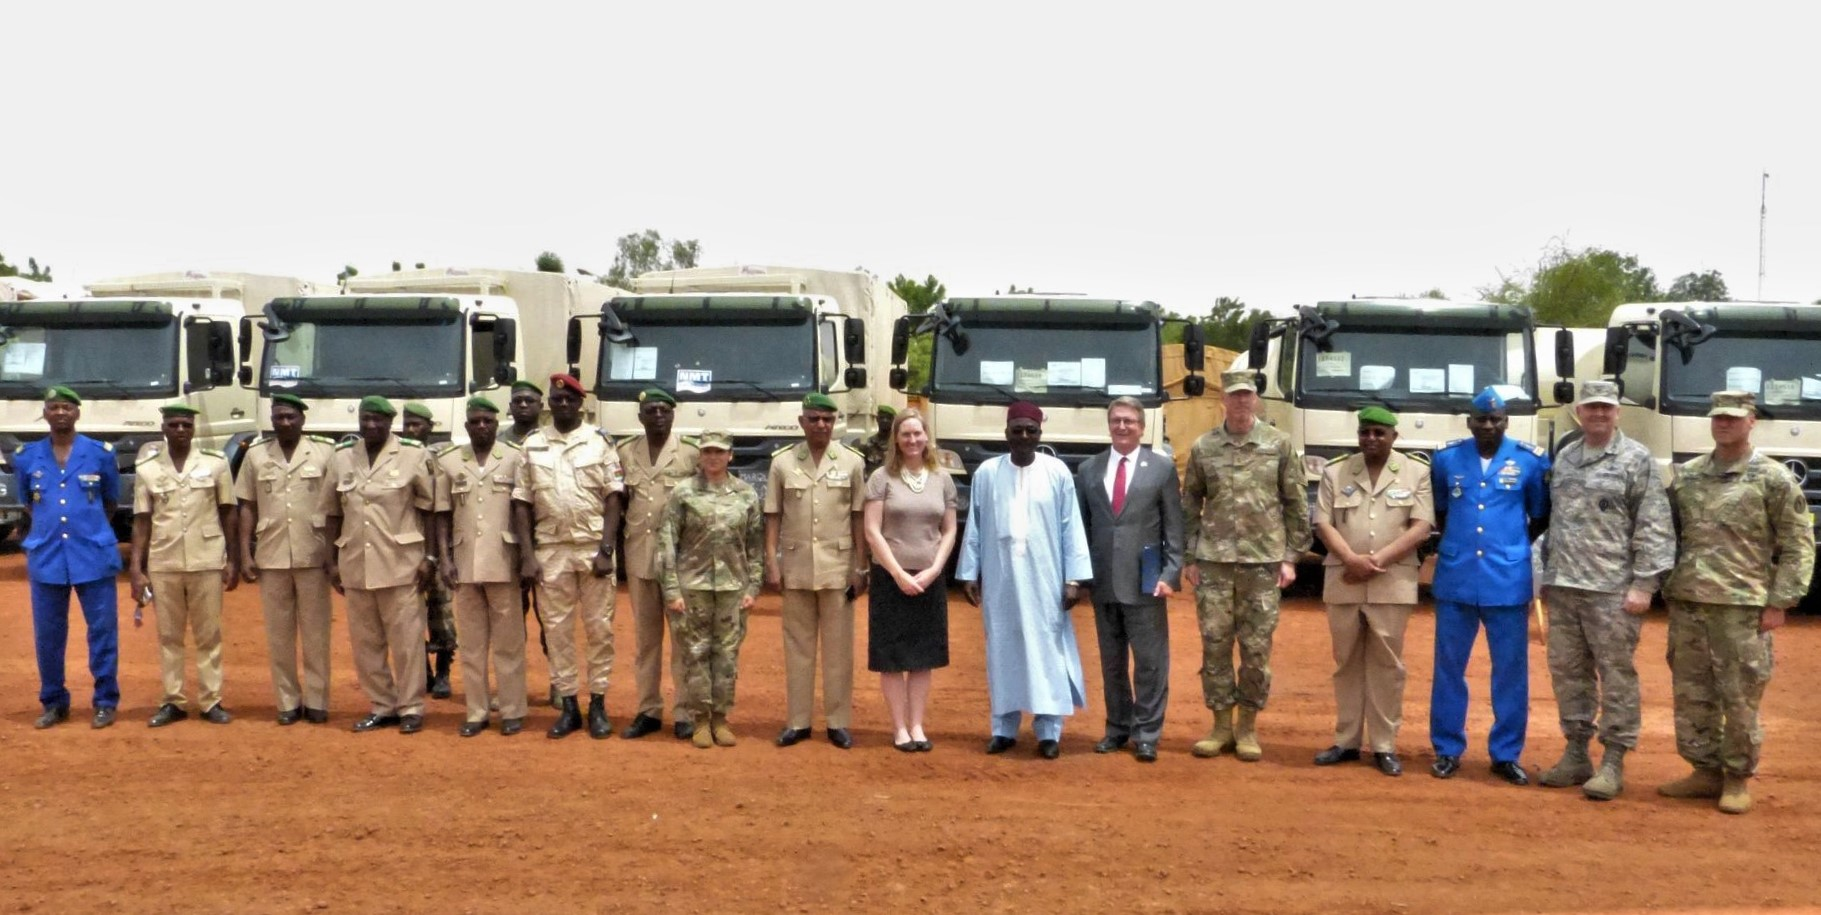 Attendees gather for the G5 Sahel Equipment Handover Ceremony in Niamey, Niger, June 6, 2019. This ceremony commemorated the first shipment of equipment, including transport, fuel and water trucks; GPS-enabled navigation systems; fuel containers; military tents and individual soldier equipment, the U.S. has sent to Niger its effort to support the G5 Sahel. (Courtesy photo)